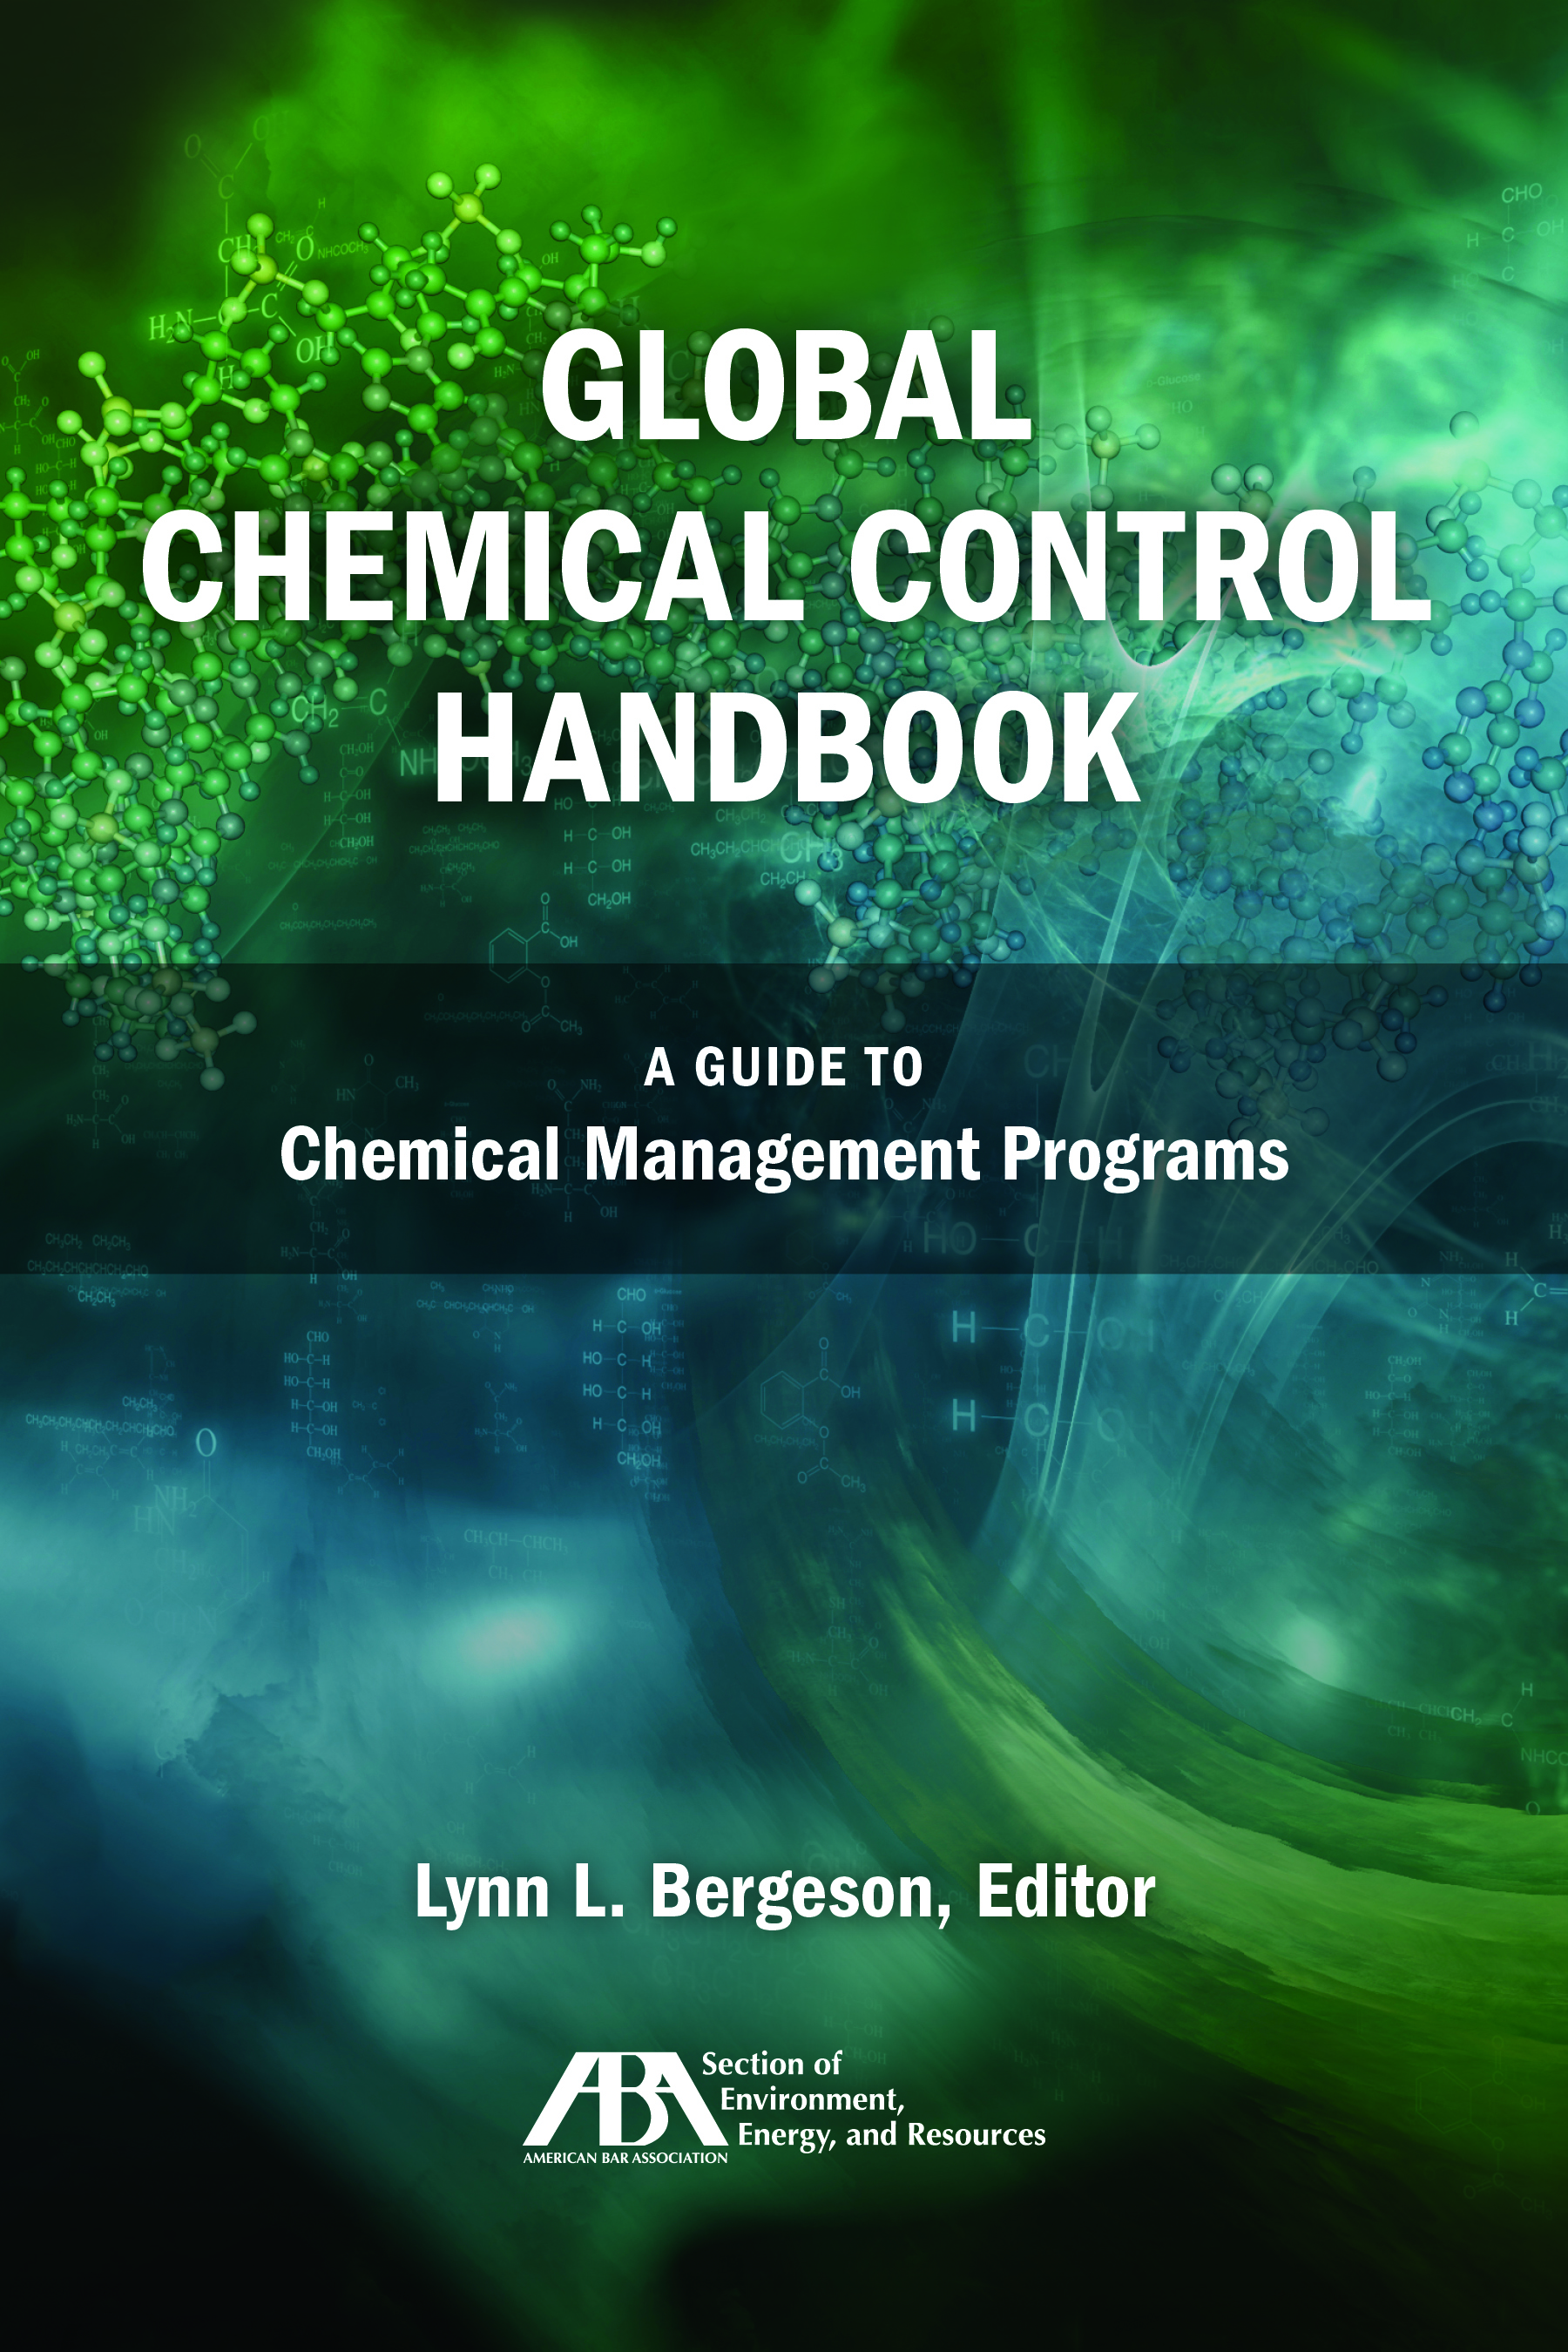 Global Chemical Control Handbook: A Guide to Chemical Management Programs